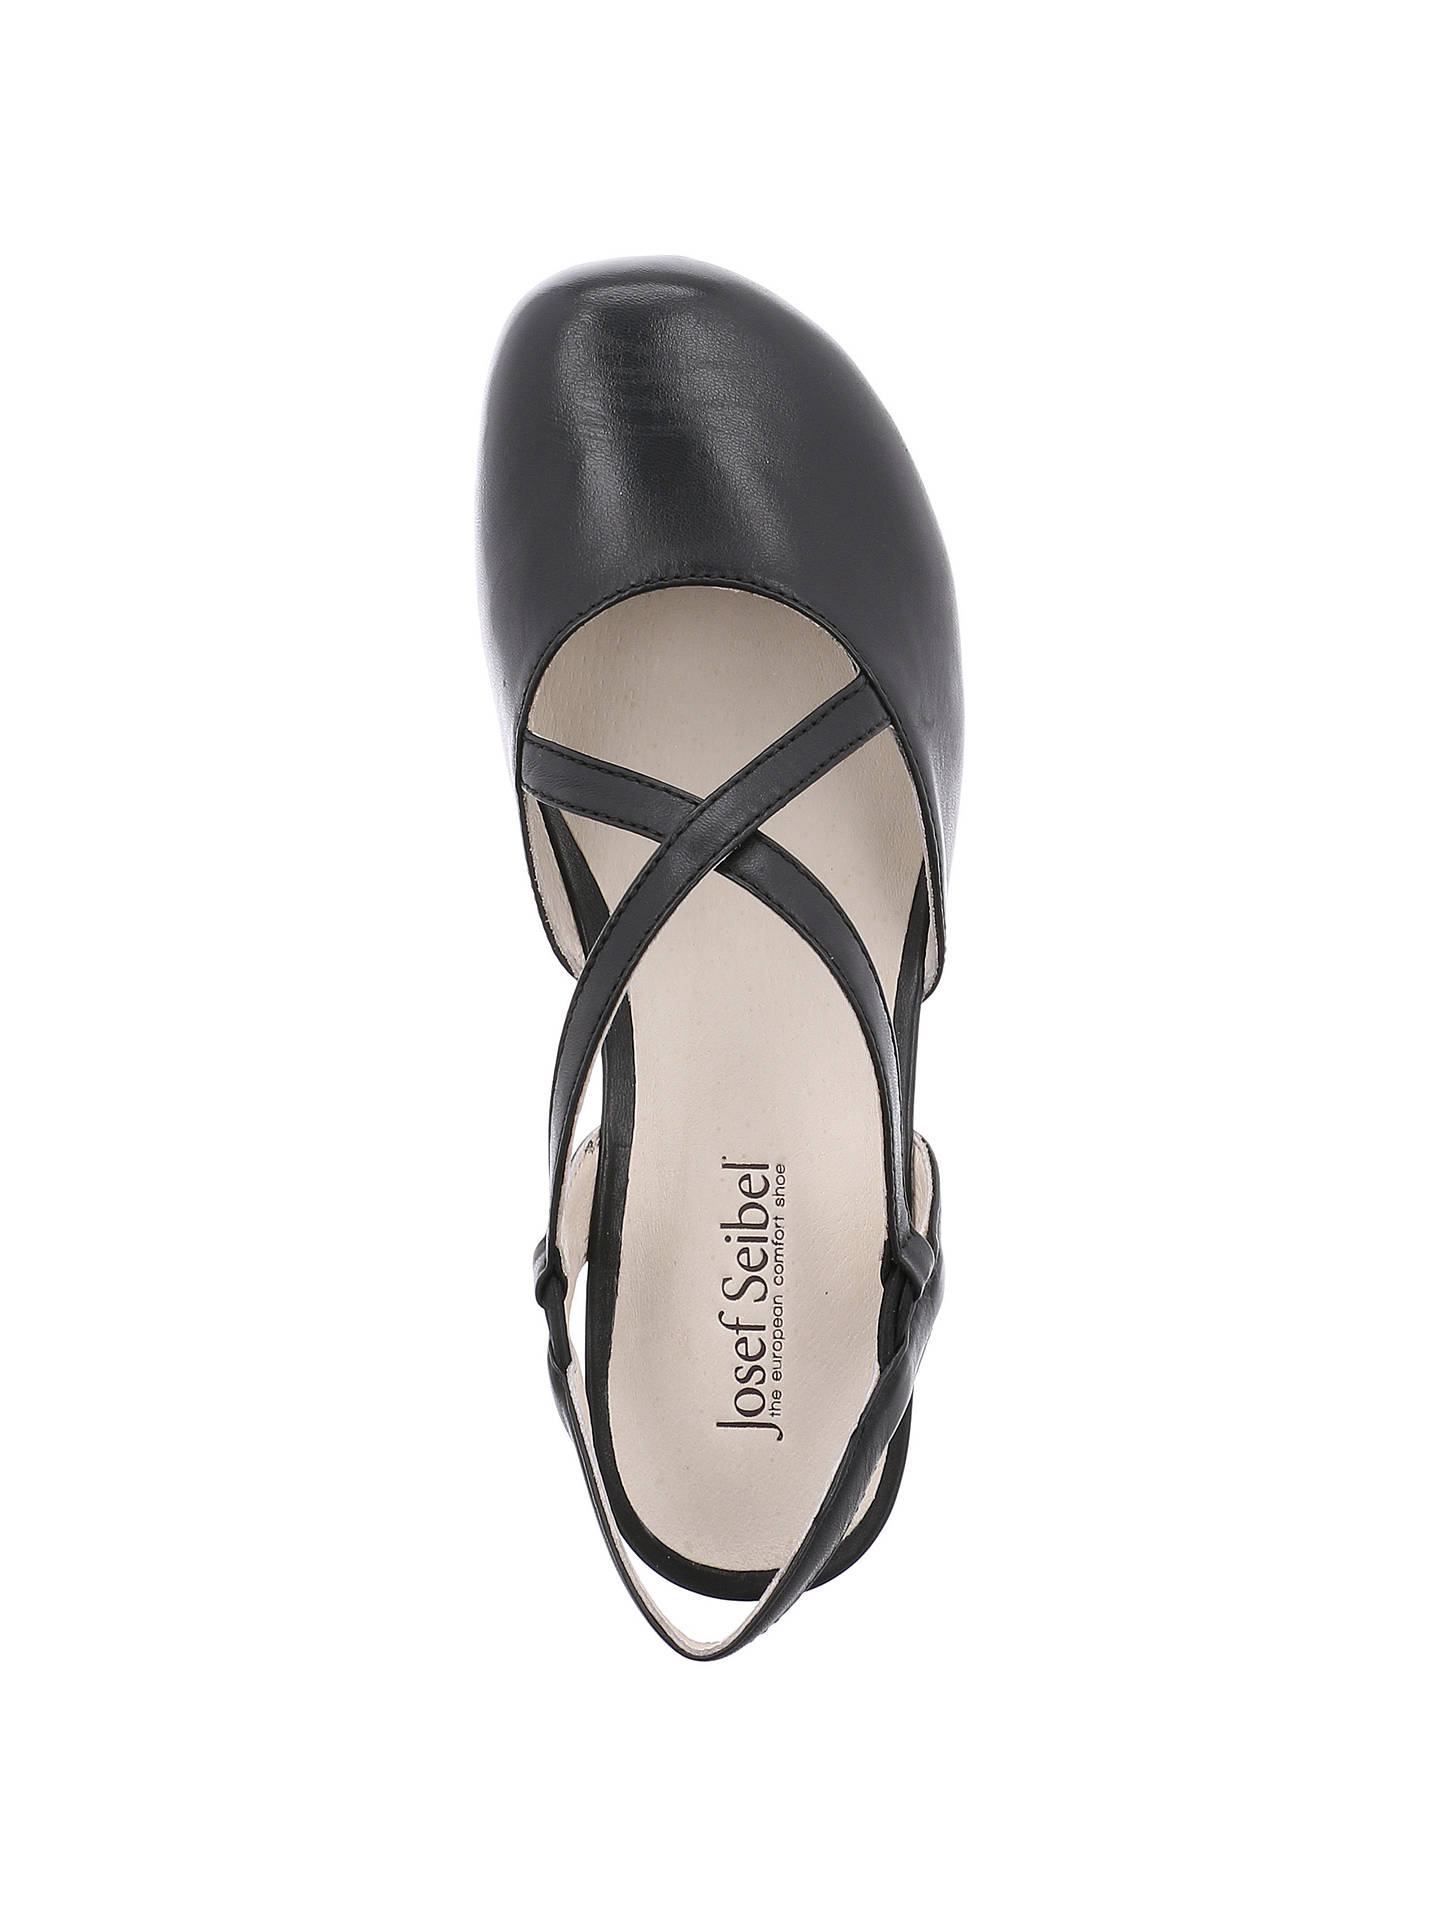 962c960d1eea0 ... Buy Josef Seibel Fiona 13 Cross Strap Pumps, Black Leather, 3 Online at  johnlewis ...